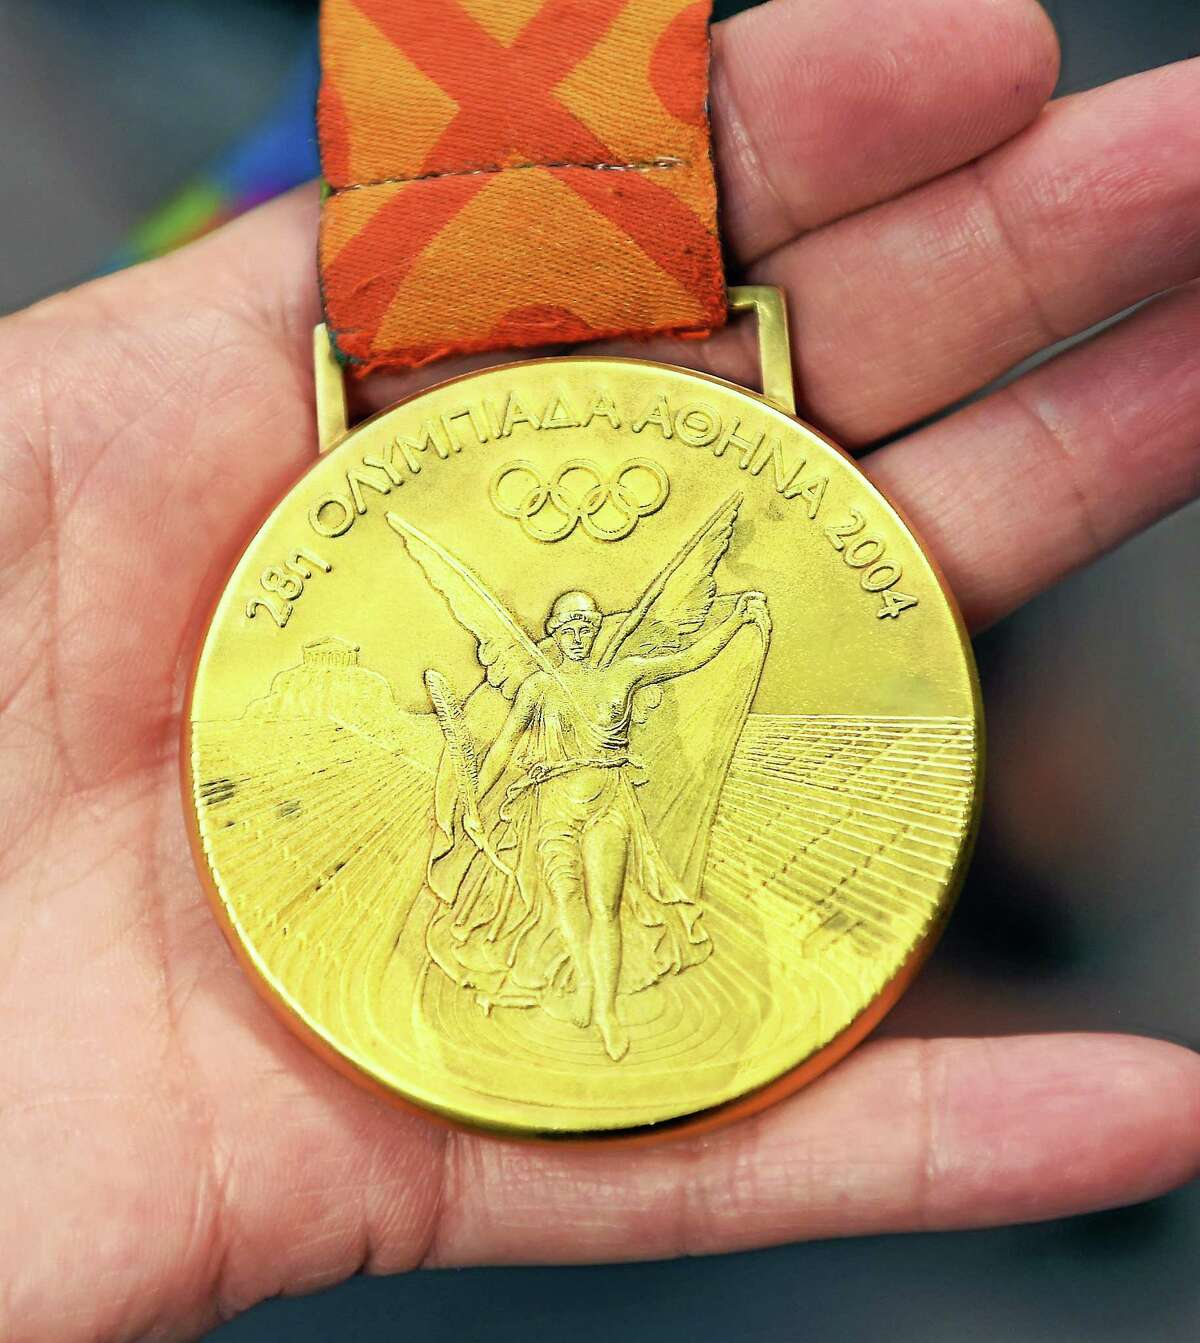 An employee of Liberty Mutual Insurance views former U.S. Olympic soccer player Brandi Chastain's gold medal from the 2004 Athens Olympics during a visit to the Wallingford Liberty Mutual Insurance on Wednesday.